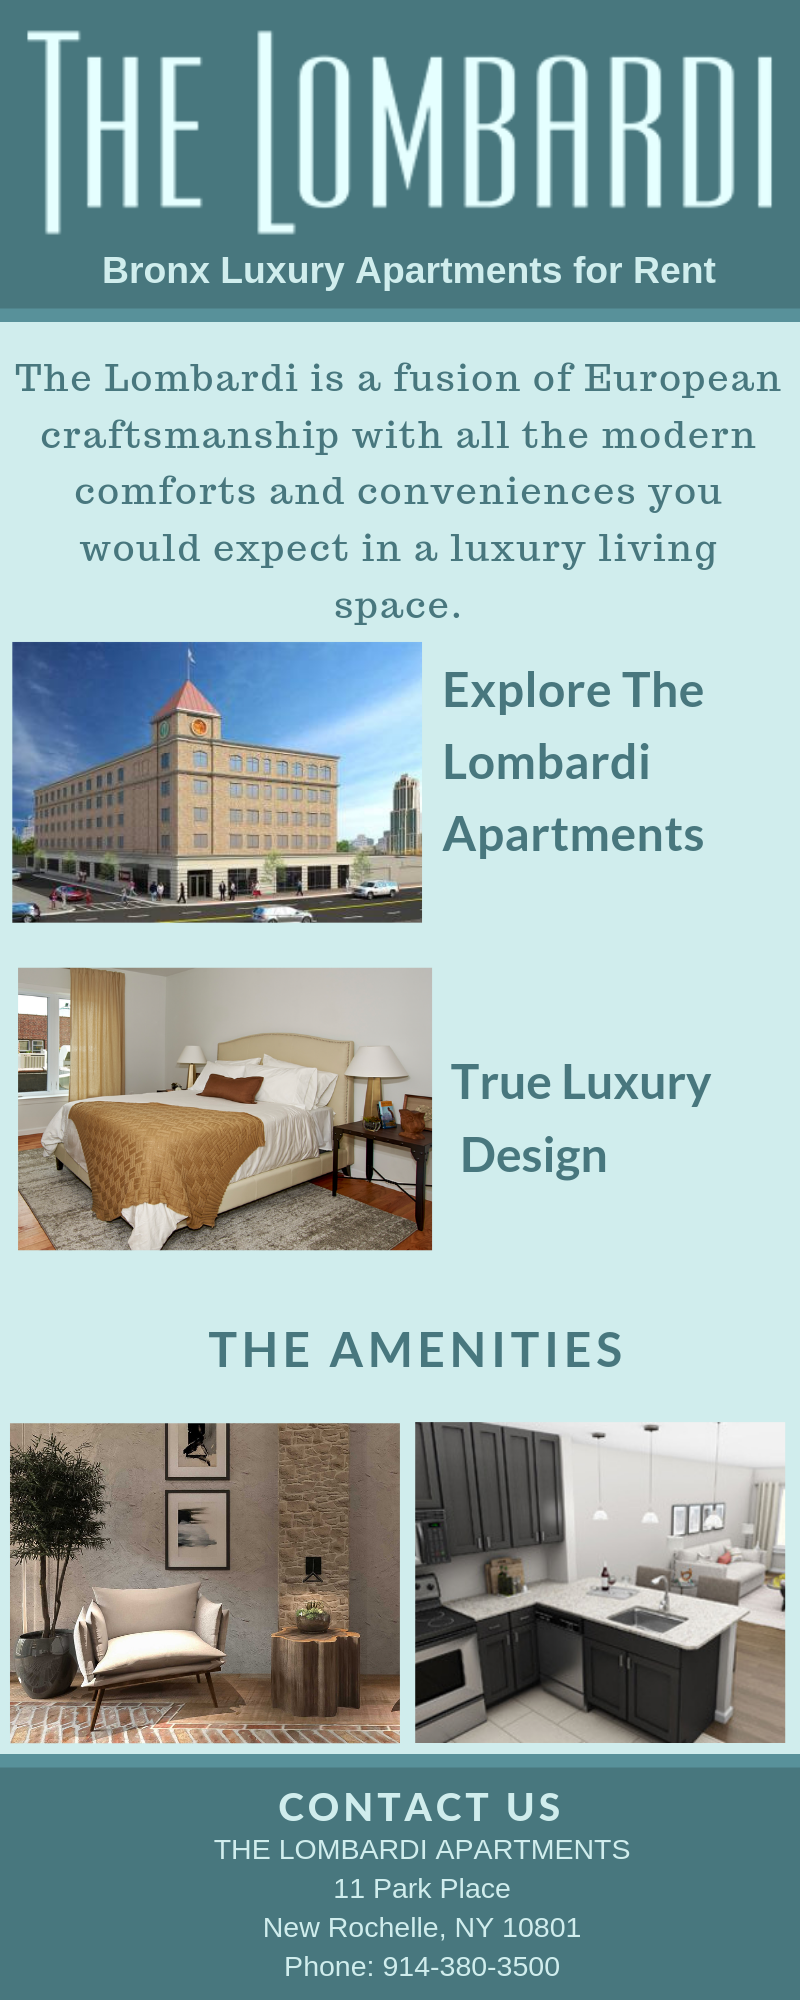 Bronx Luxury Apartments For Rent The Lombardi Luxury Apartments Apartments For Rent Apartment